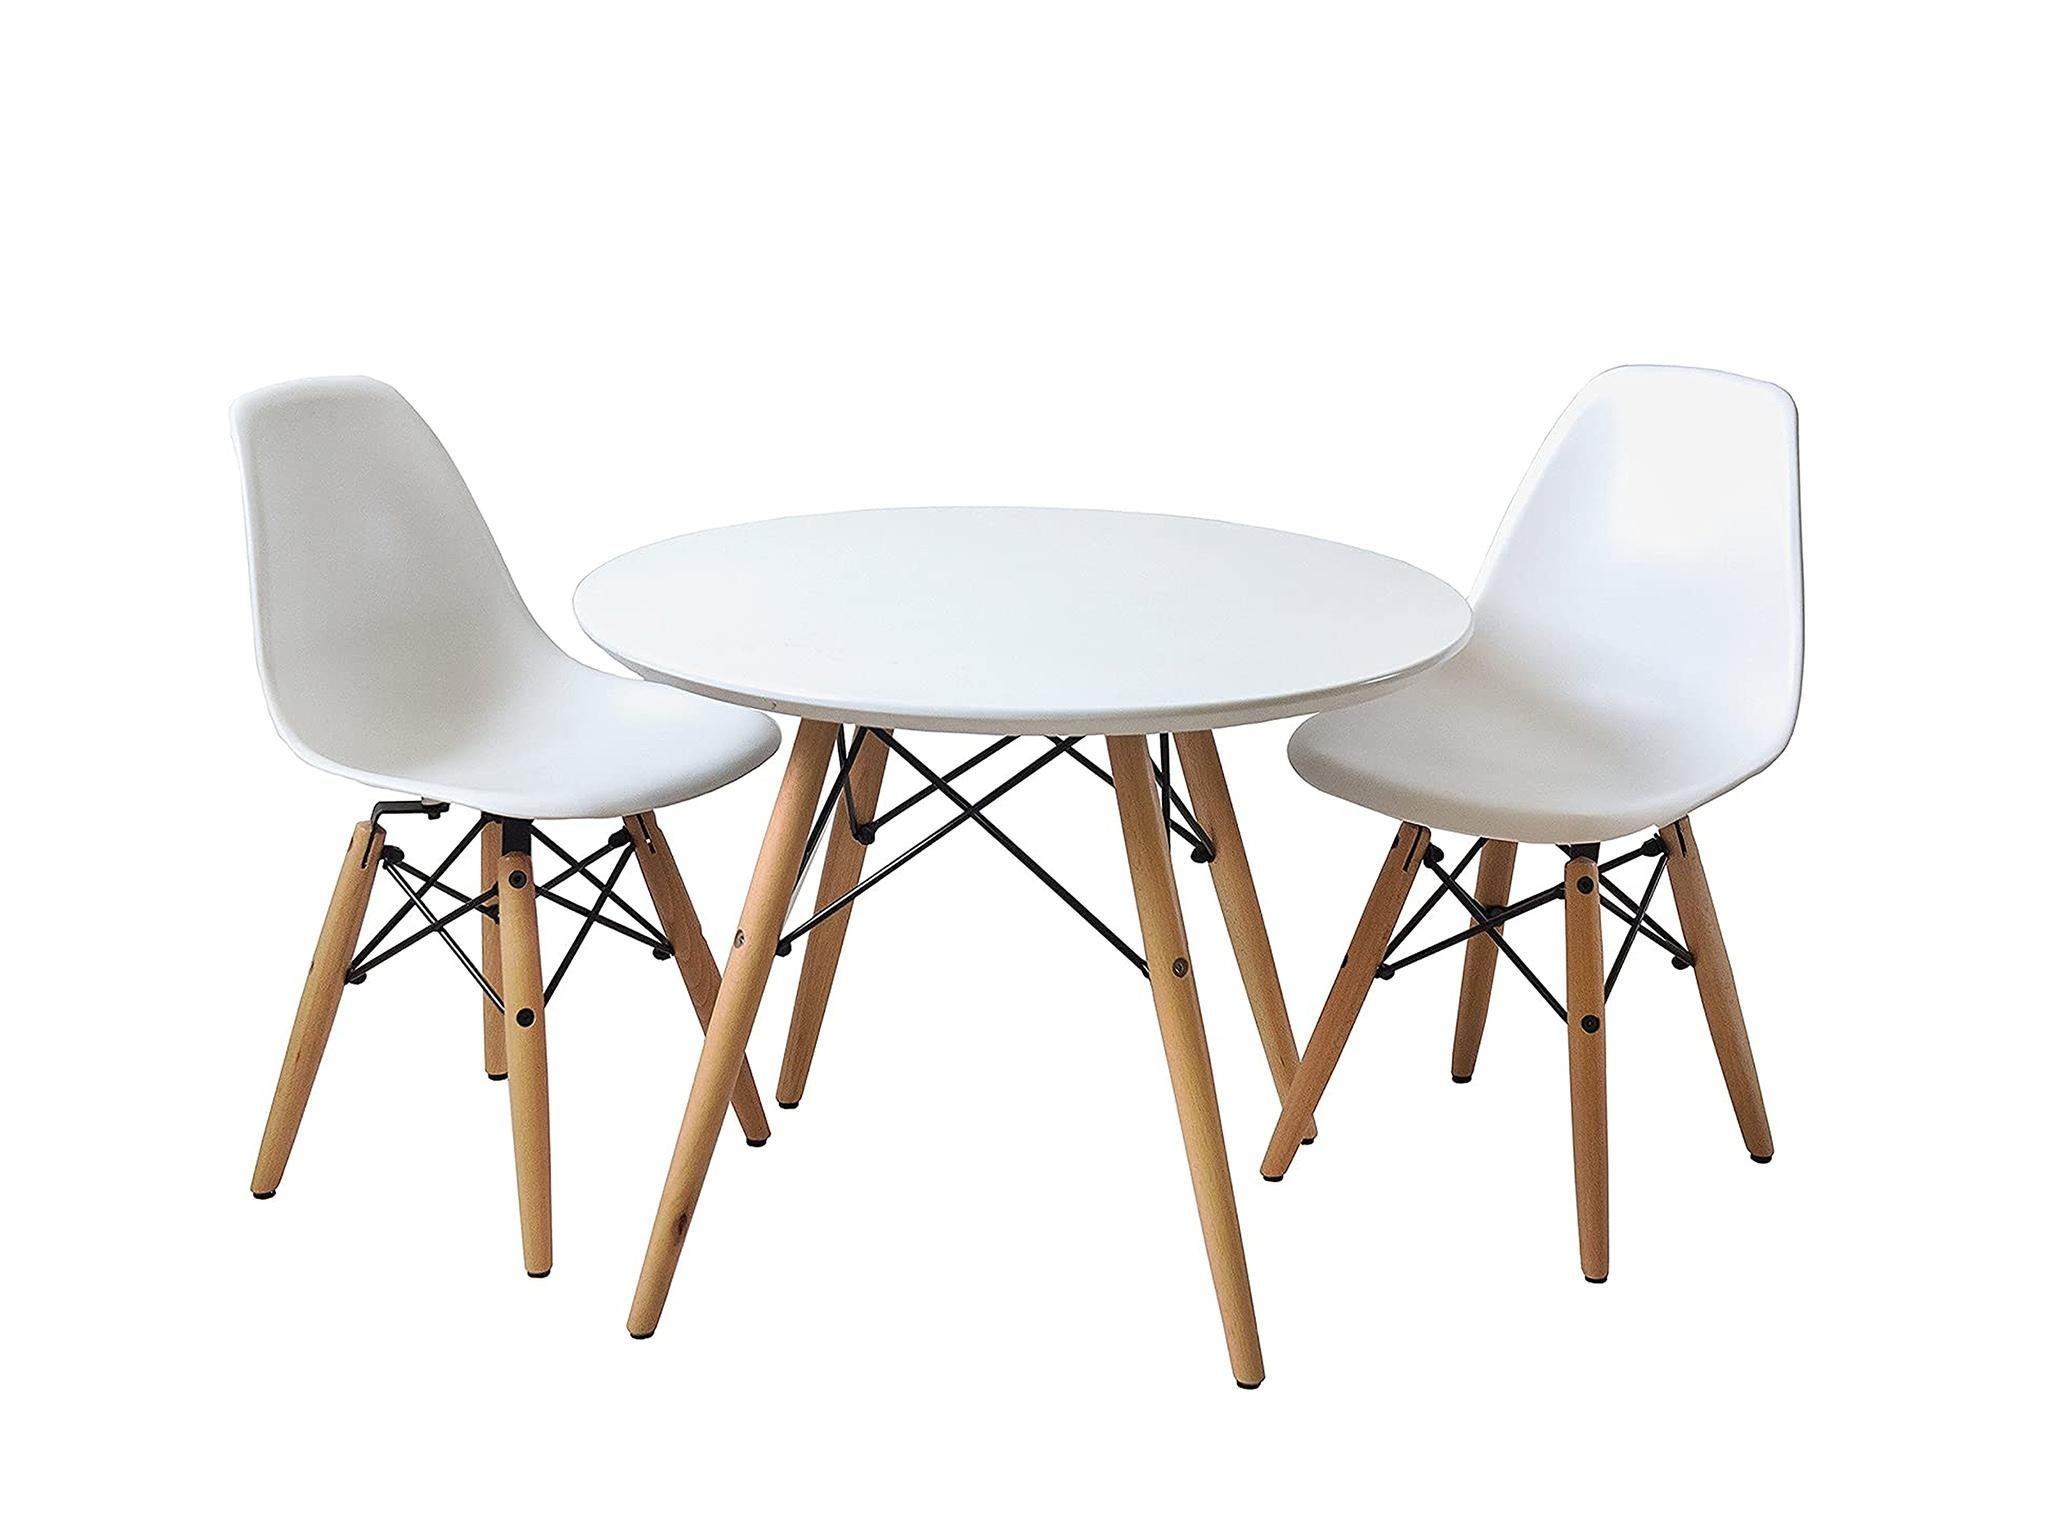 - Best Kids' Table And Chairs Sets To Encourage Learning And